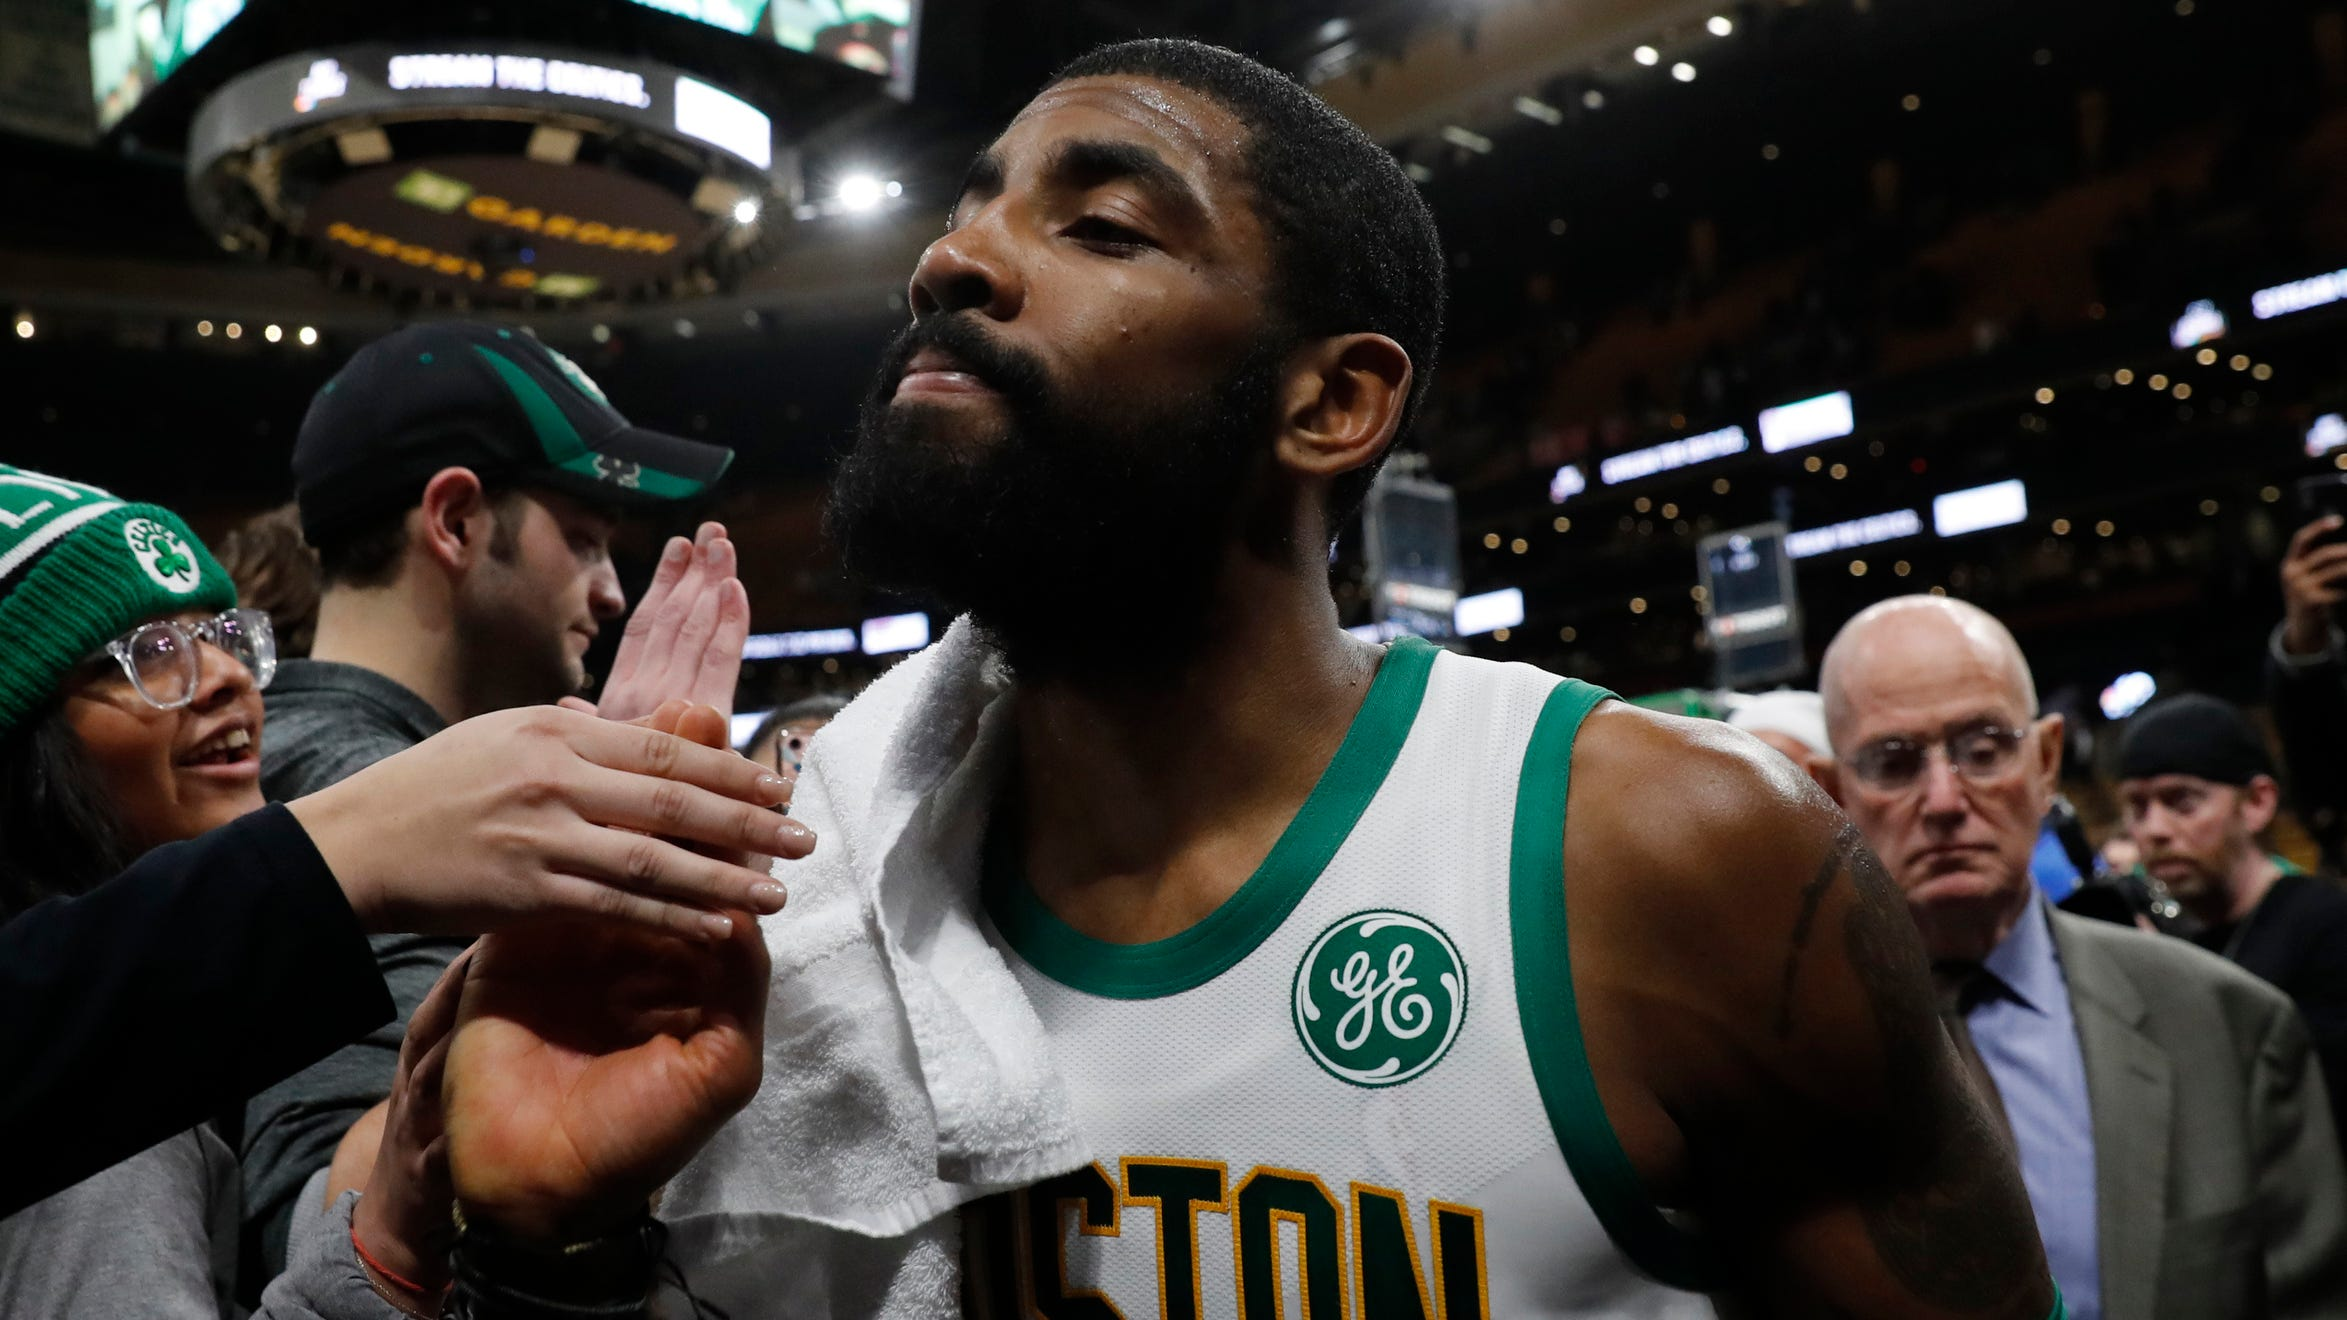 48635be5-7543-4777-a696-5babe2231c3b-2019-01-16_kyrie_irving